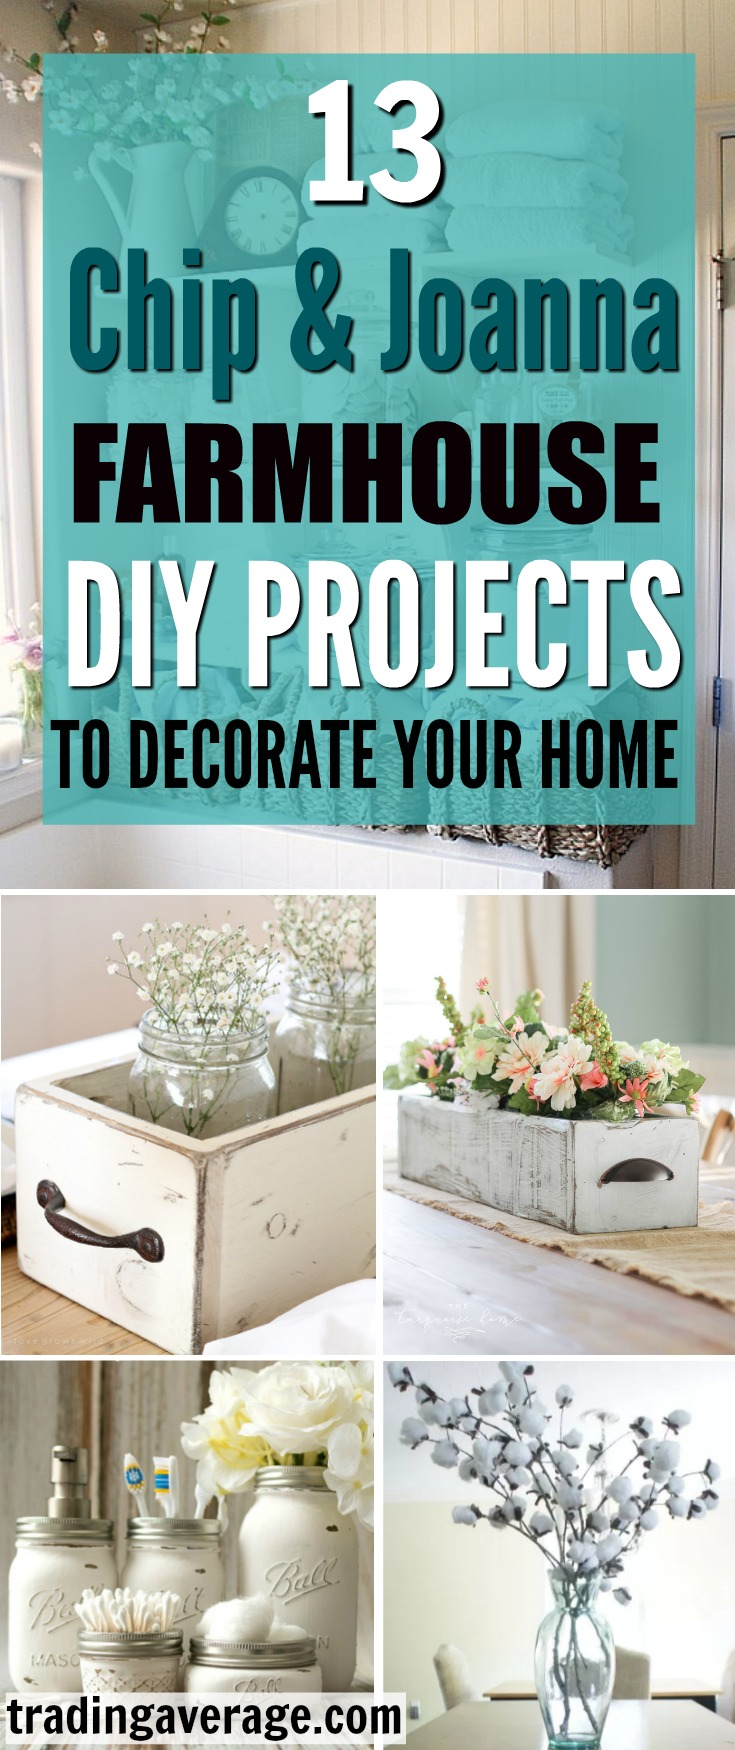 Diy Room Decor Project Ideas You Need To Try 13 diy farmhouse décor ideas that you need to try